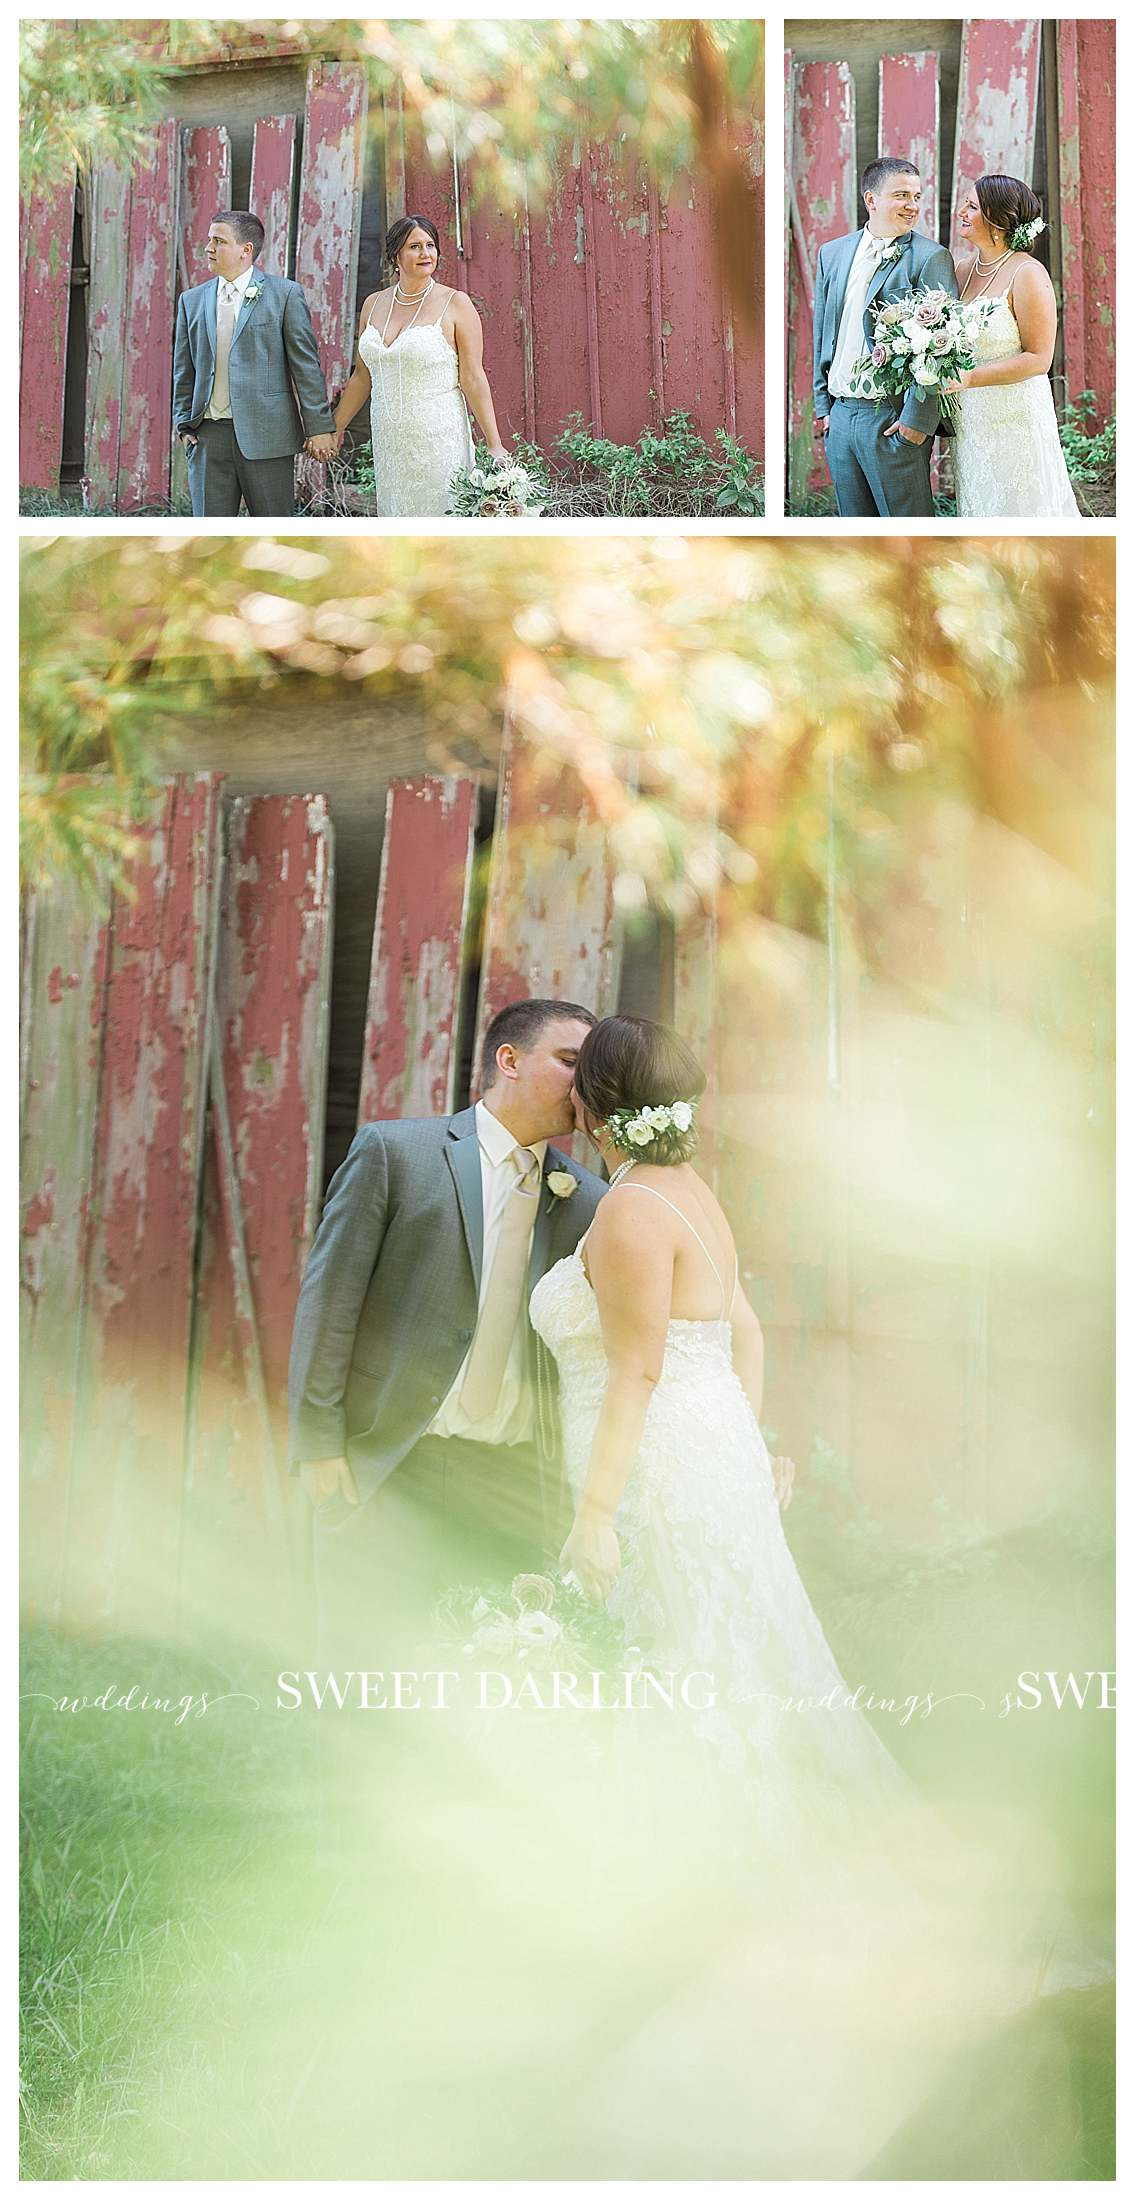 Bride and groom photos at red barn in Champaign, IL